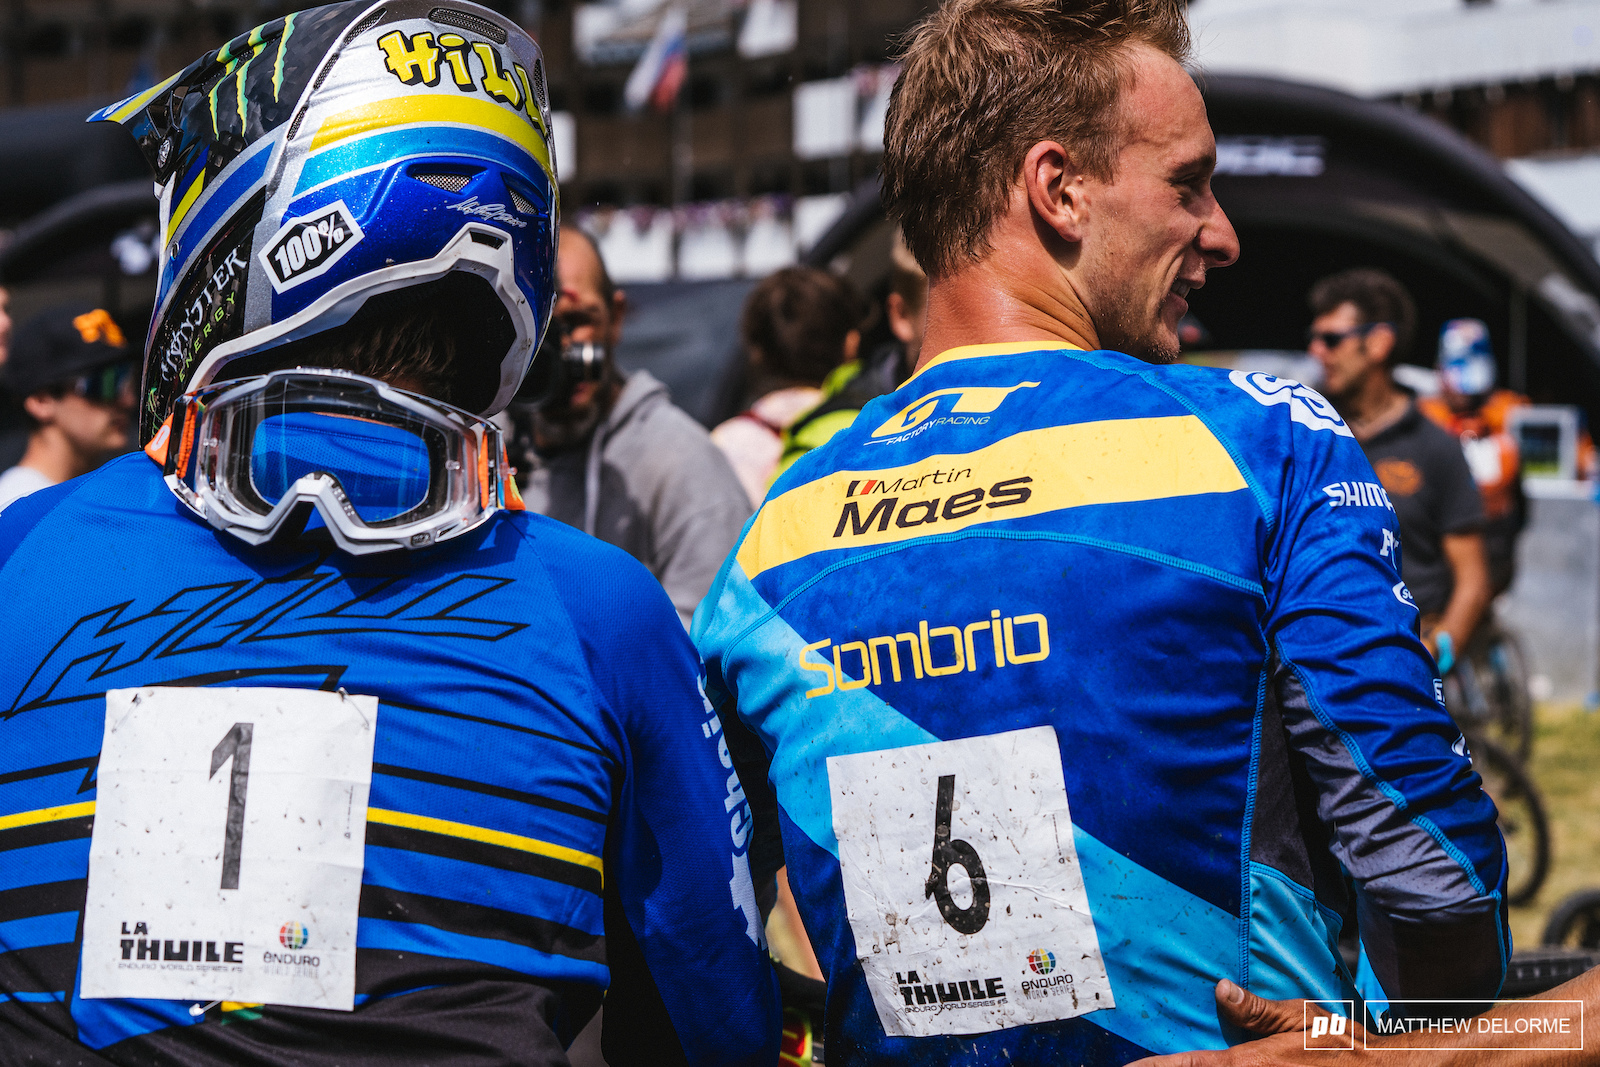 The fastest men on the EWS circuit. Hill and Maes put on a hell of a show.